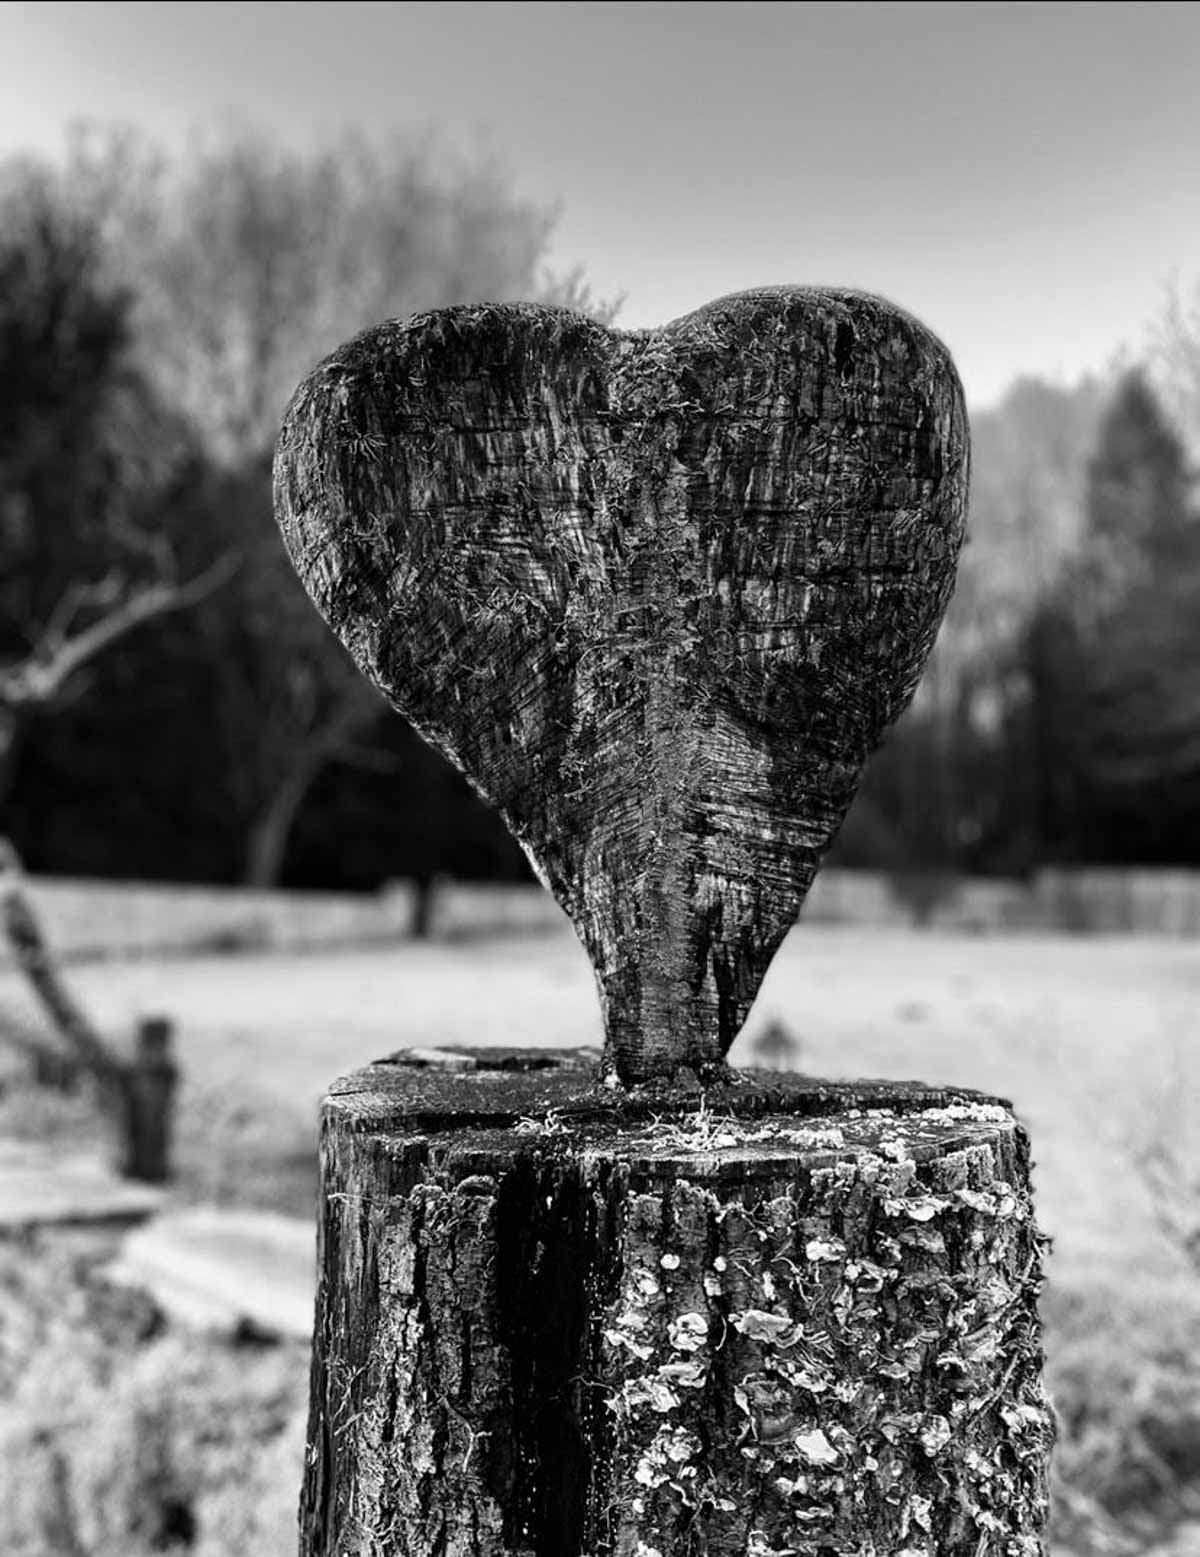 heart sculpture in the grounds